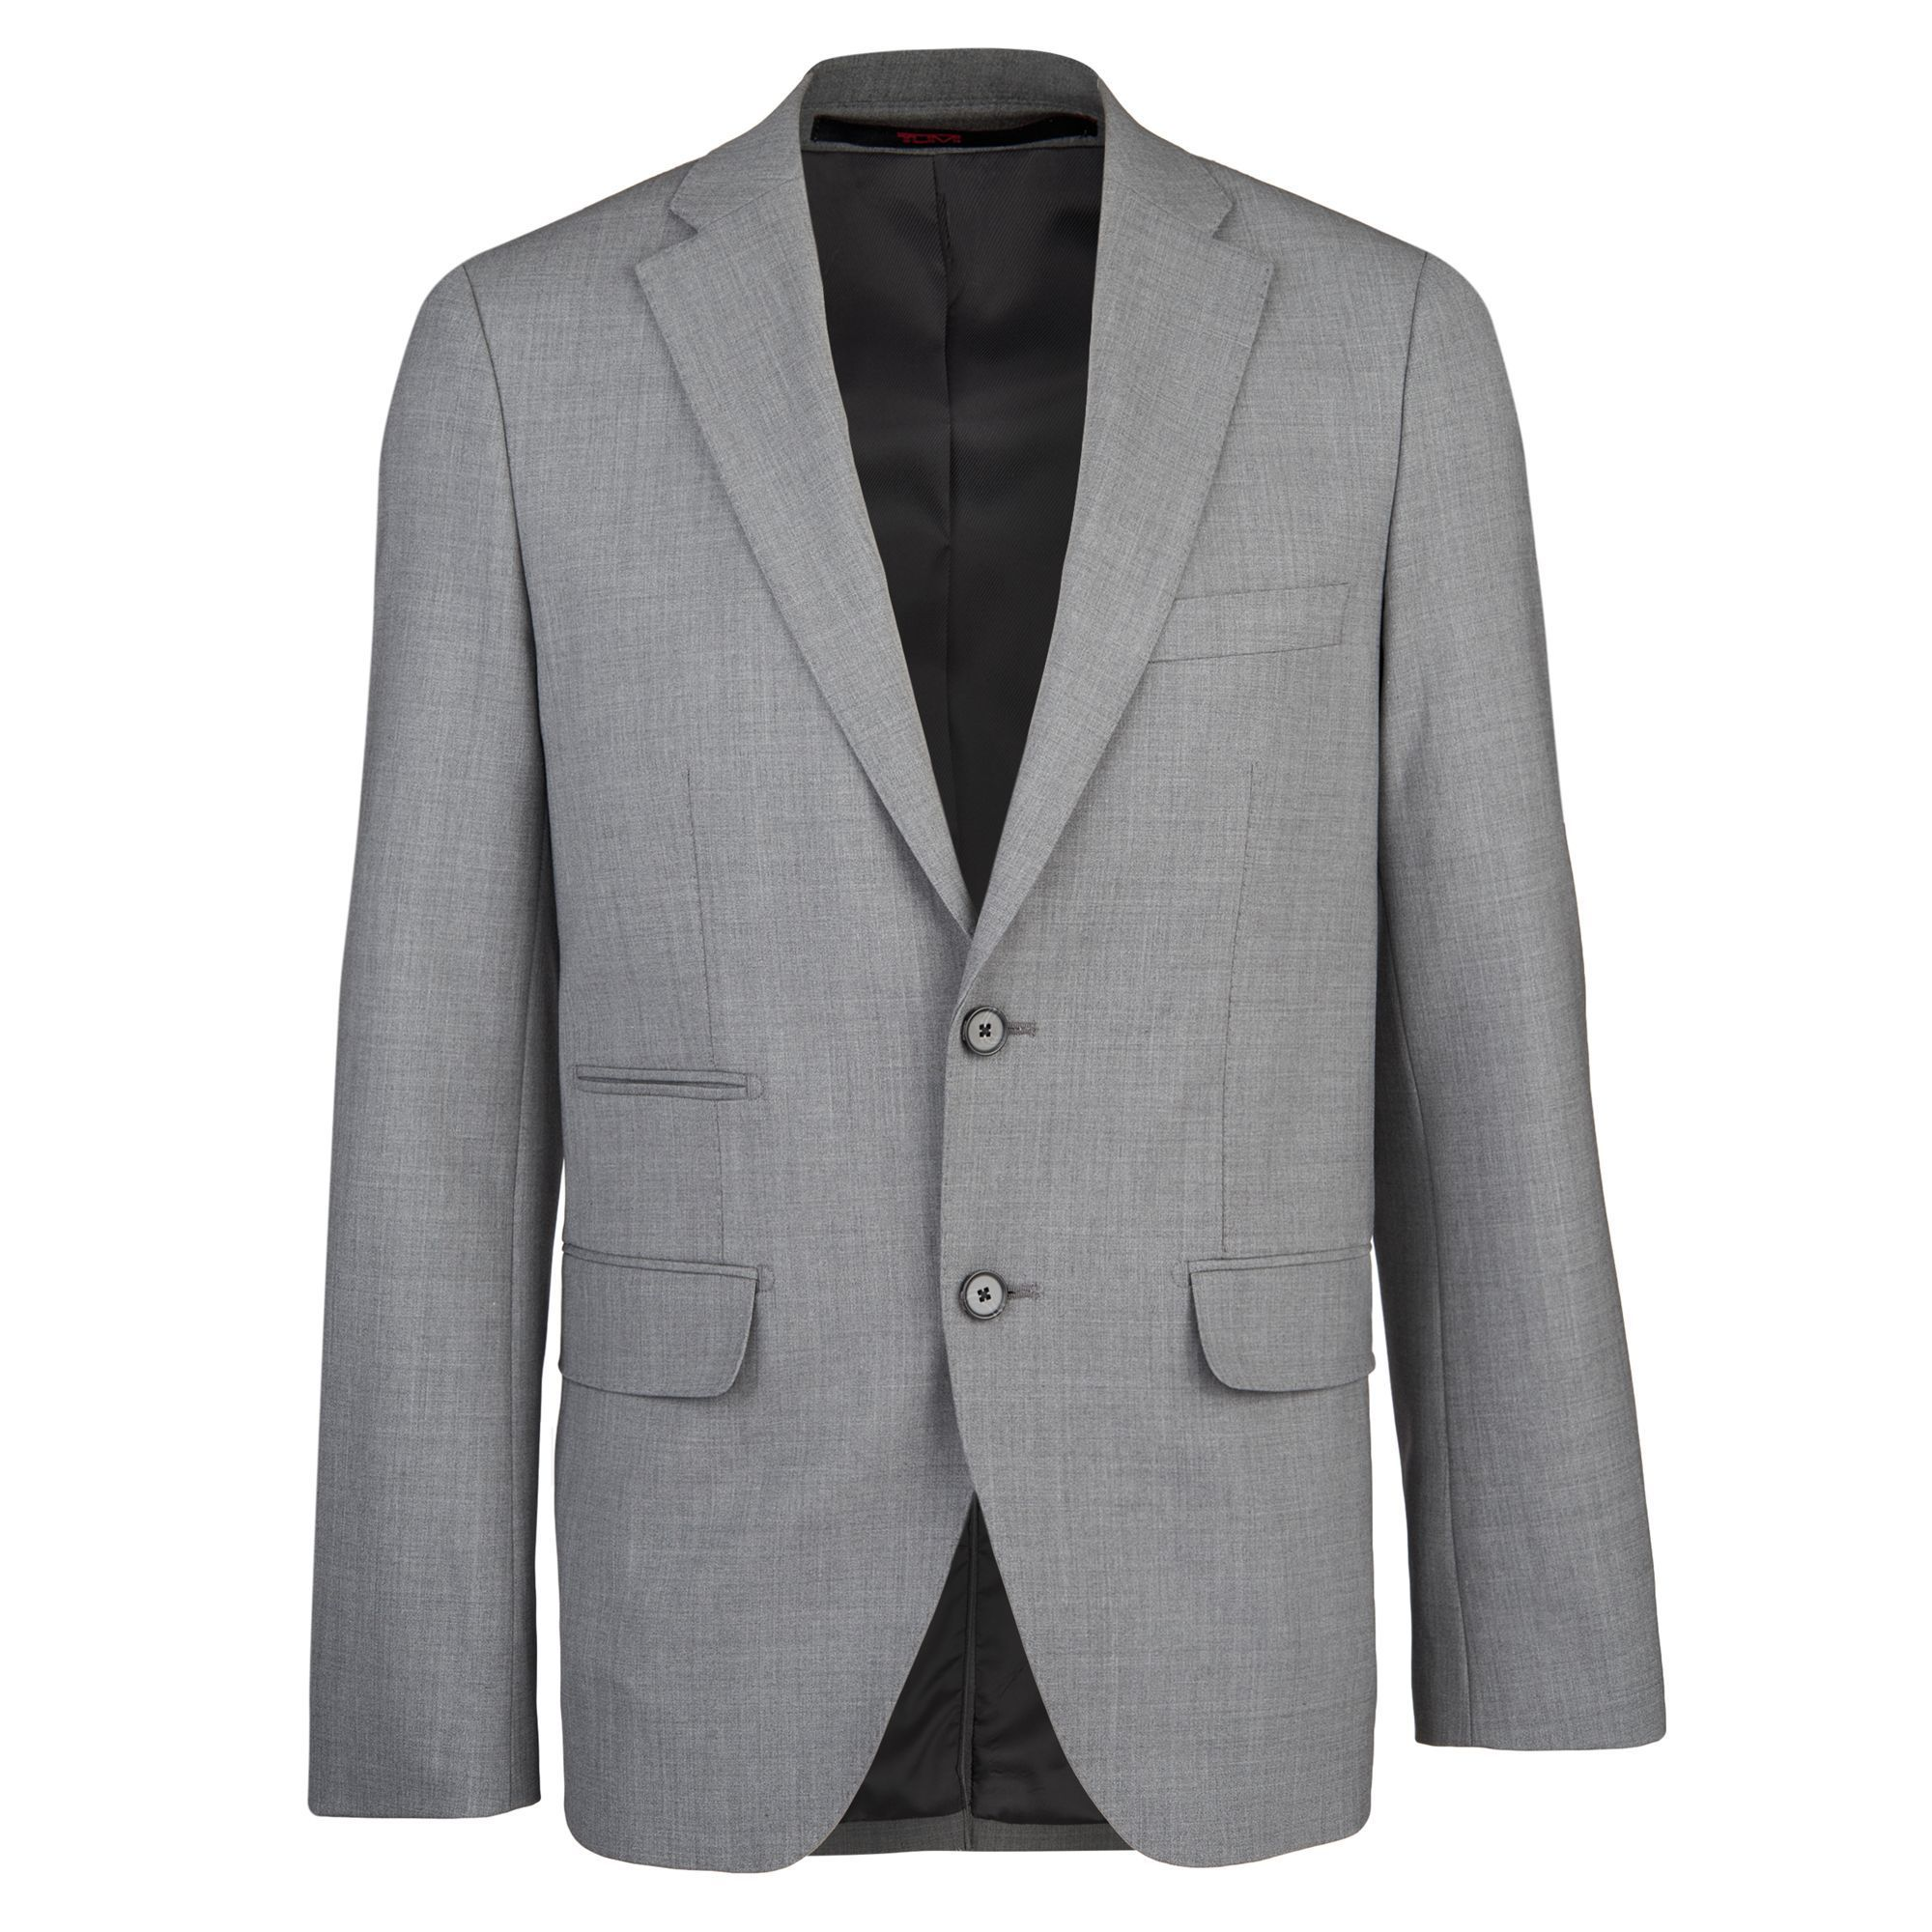 NWT TUMI classic travel blazer 46 jacket sport coat grey $595 w ...